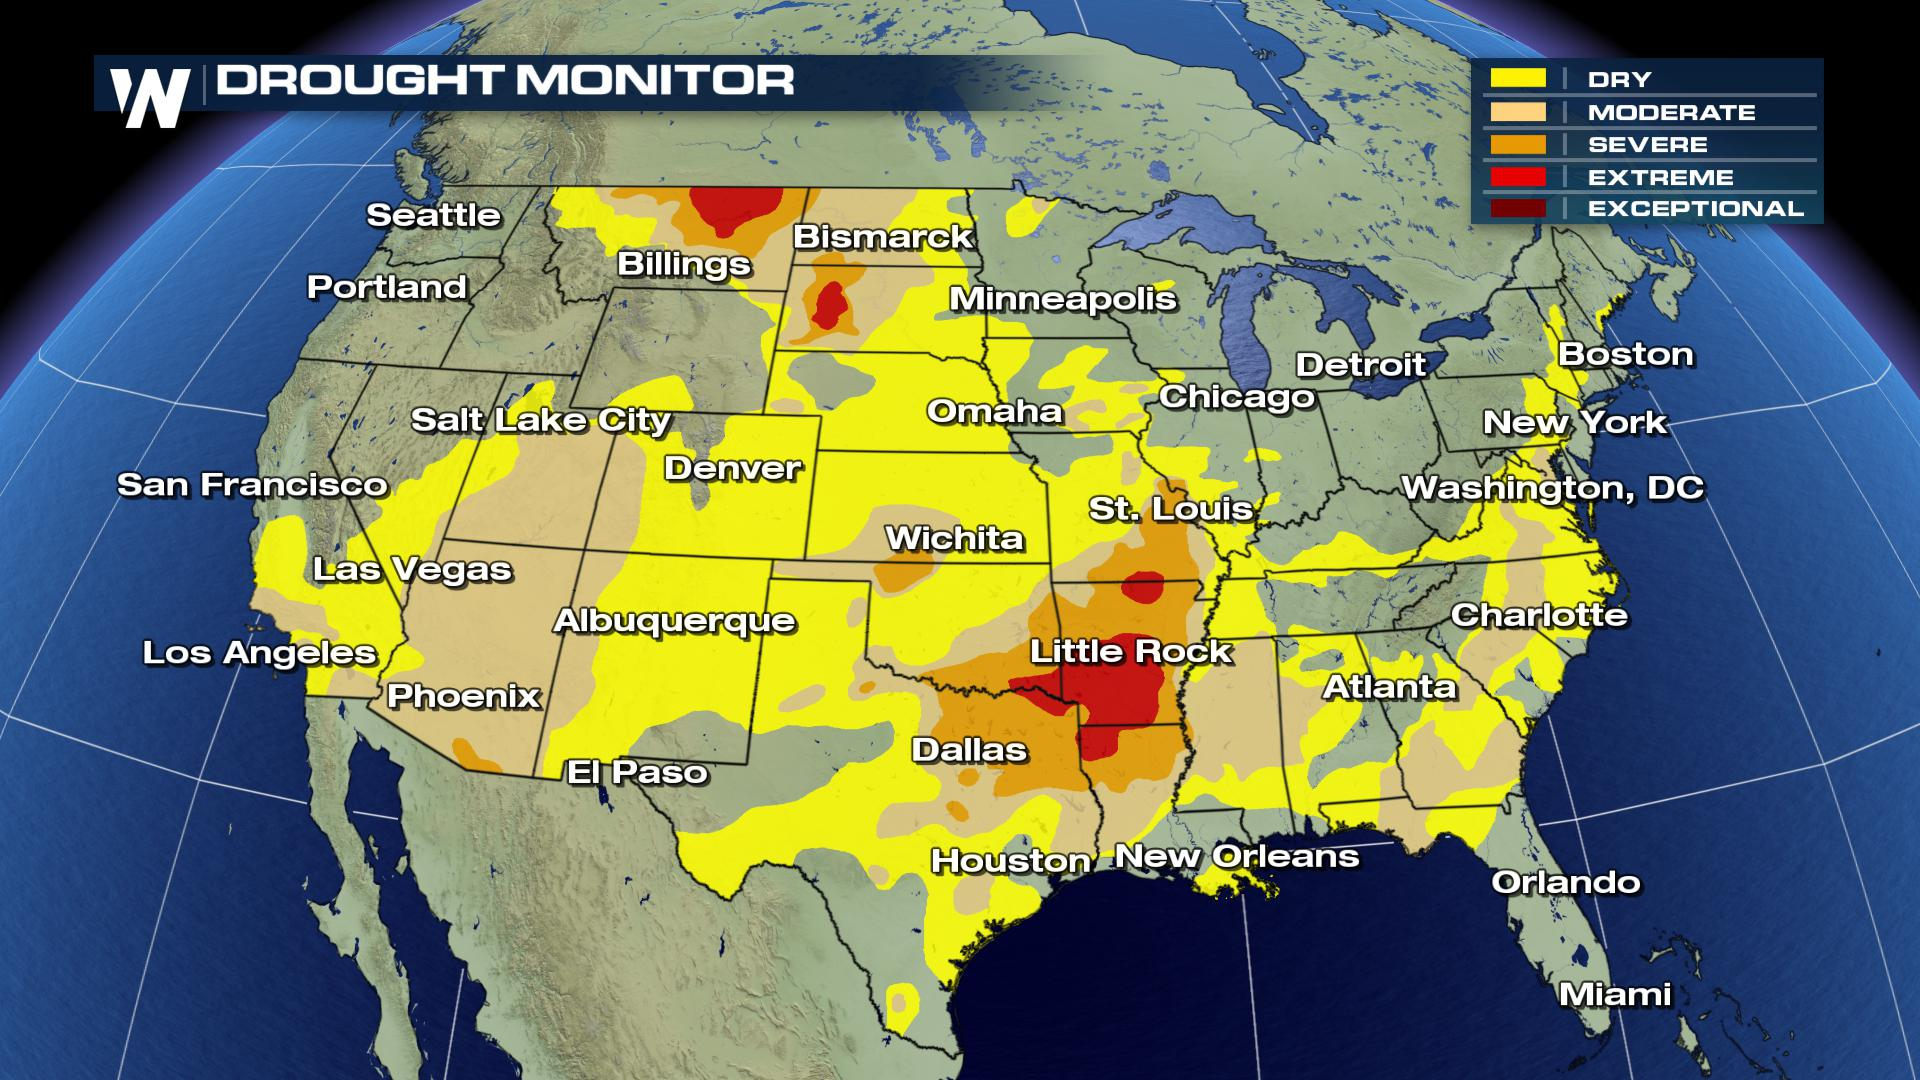 Drought Conditions Spread Across the United States - WeatherNation